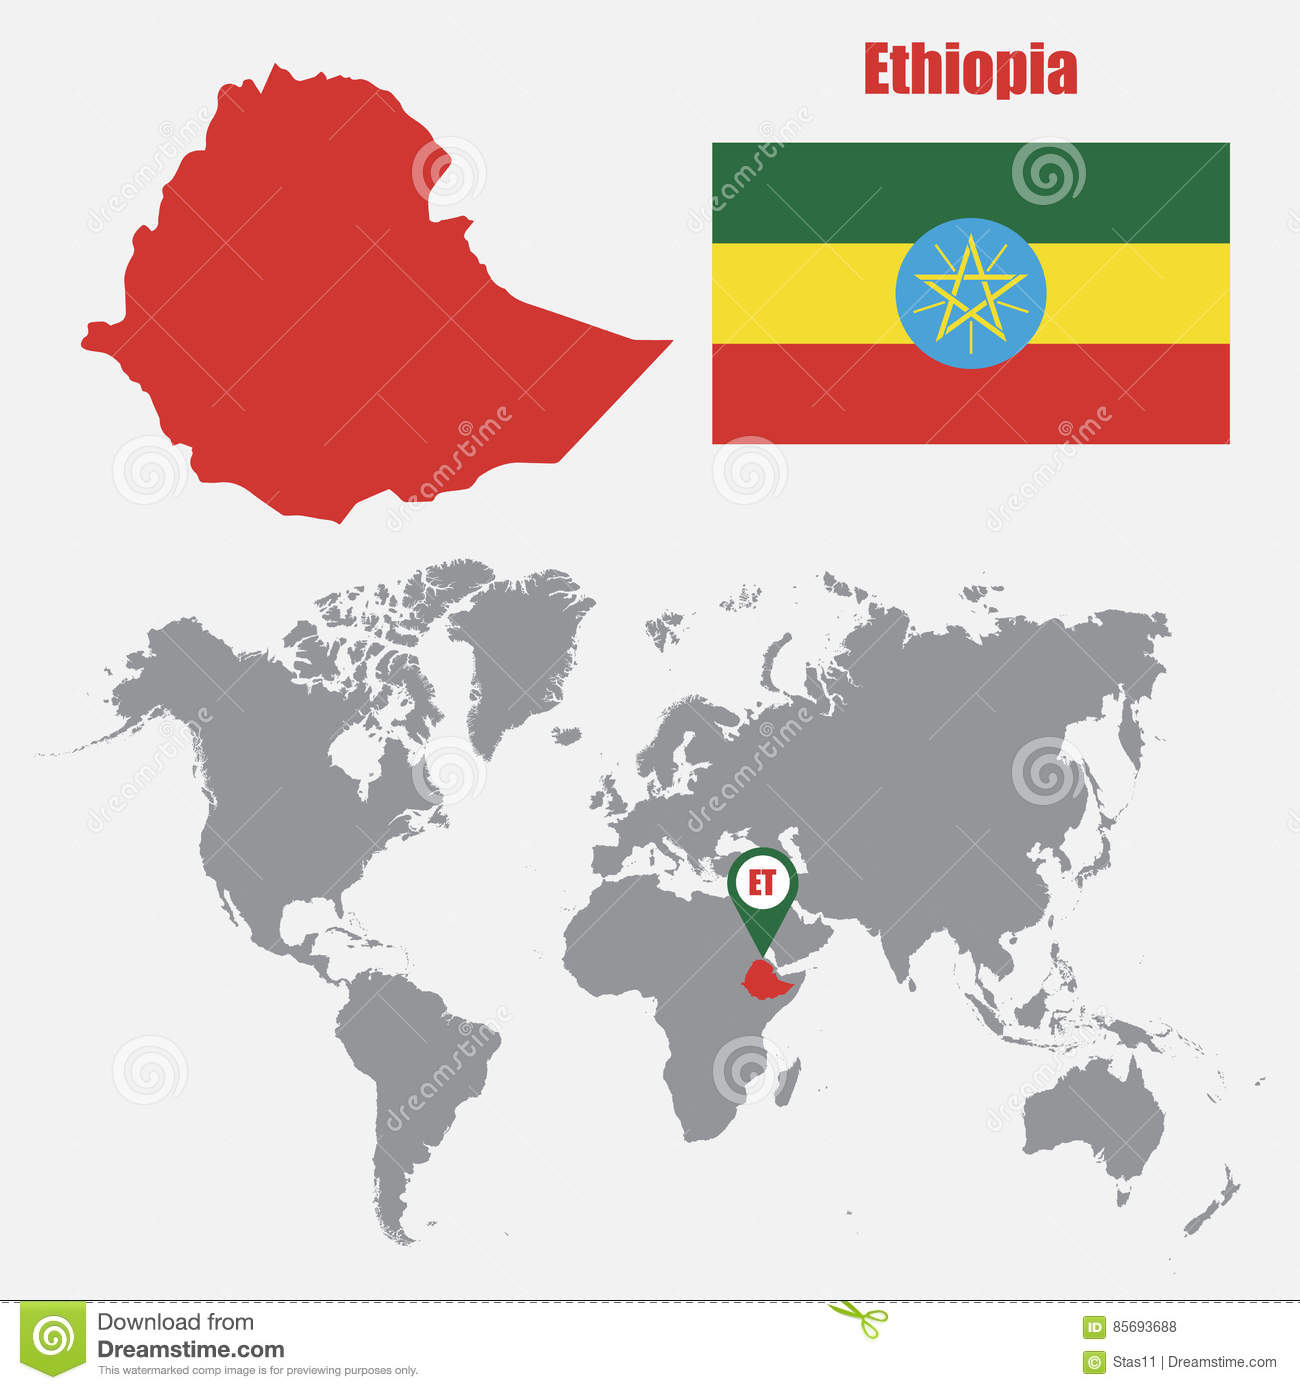 Ethiopia map on a world map with flag and map pointer vector download comp gumiabroncs Choice Image